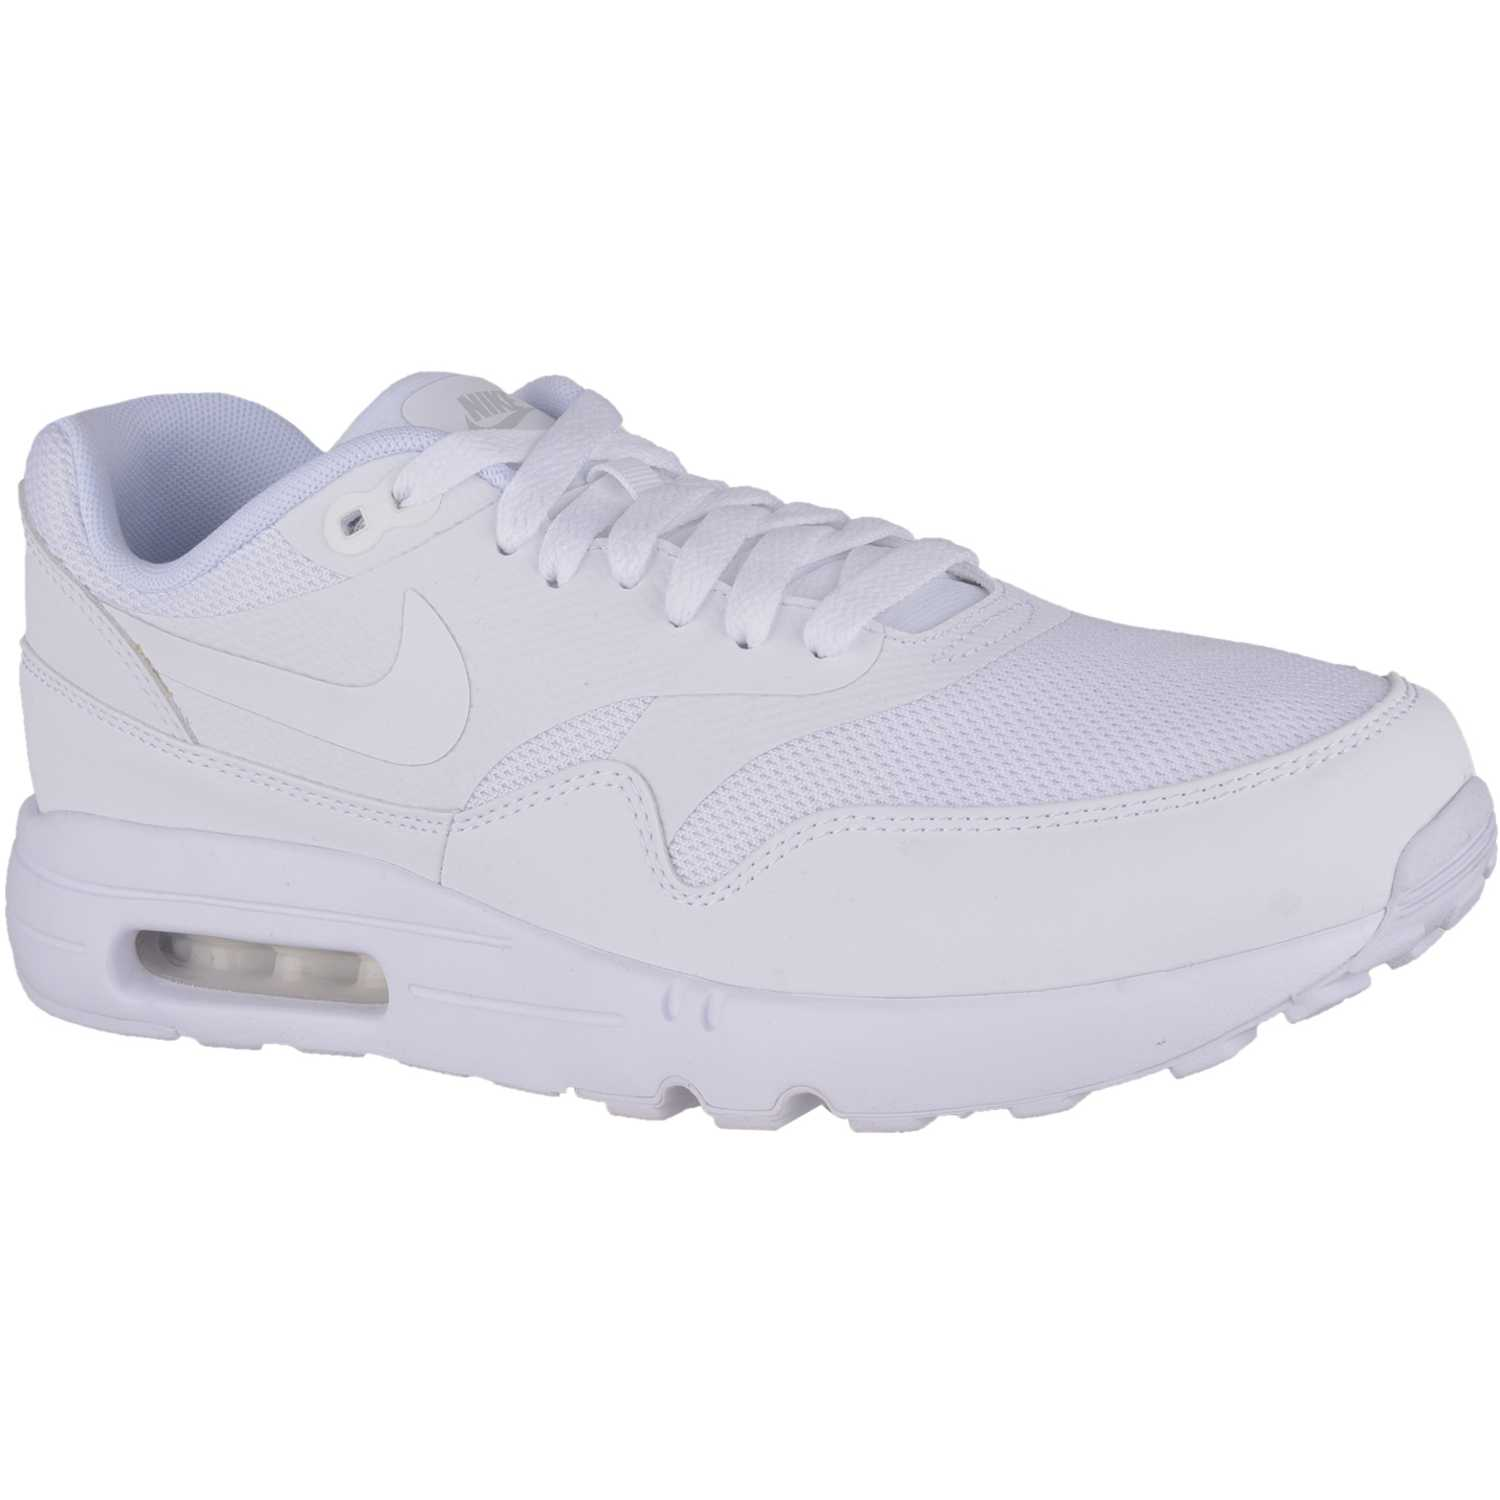 Casual de Hombre Nike Blanco air max 1 ultra 2.0 essential